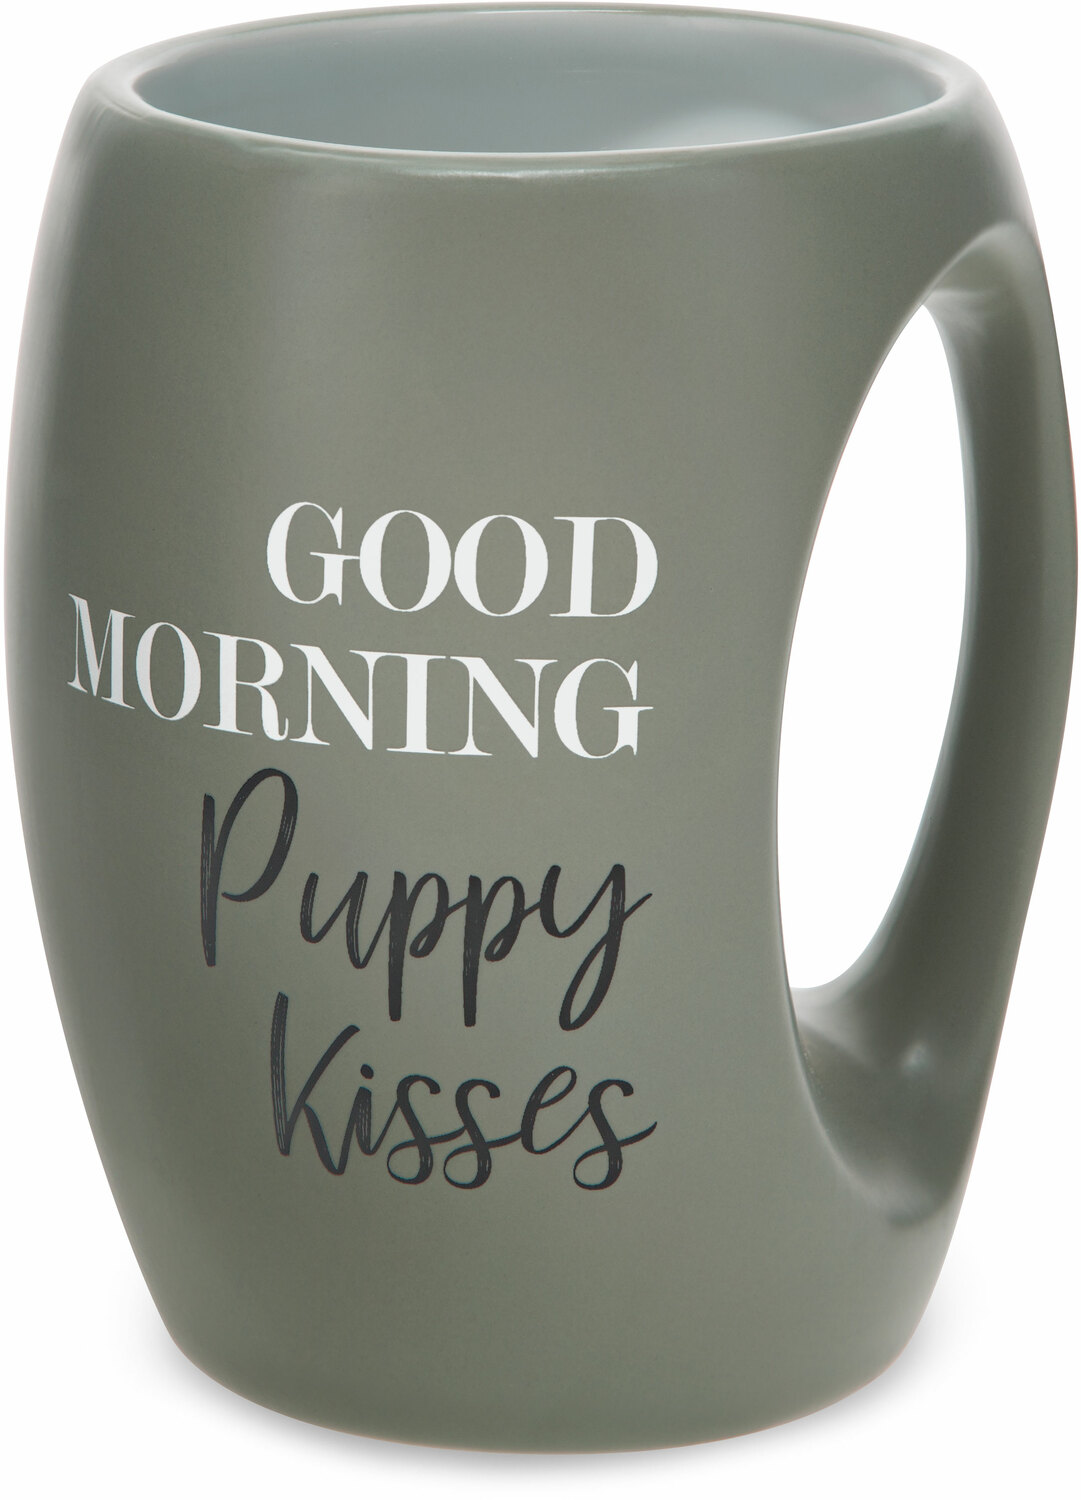 Puppy Kisses by Good Morning - Puppy Kisses - 16 oz  Mug